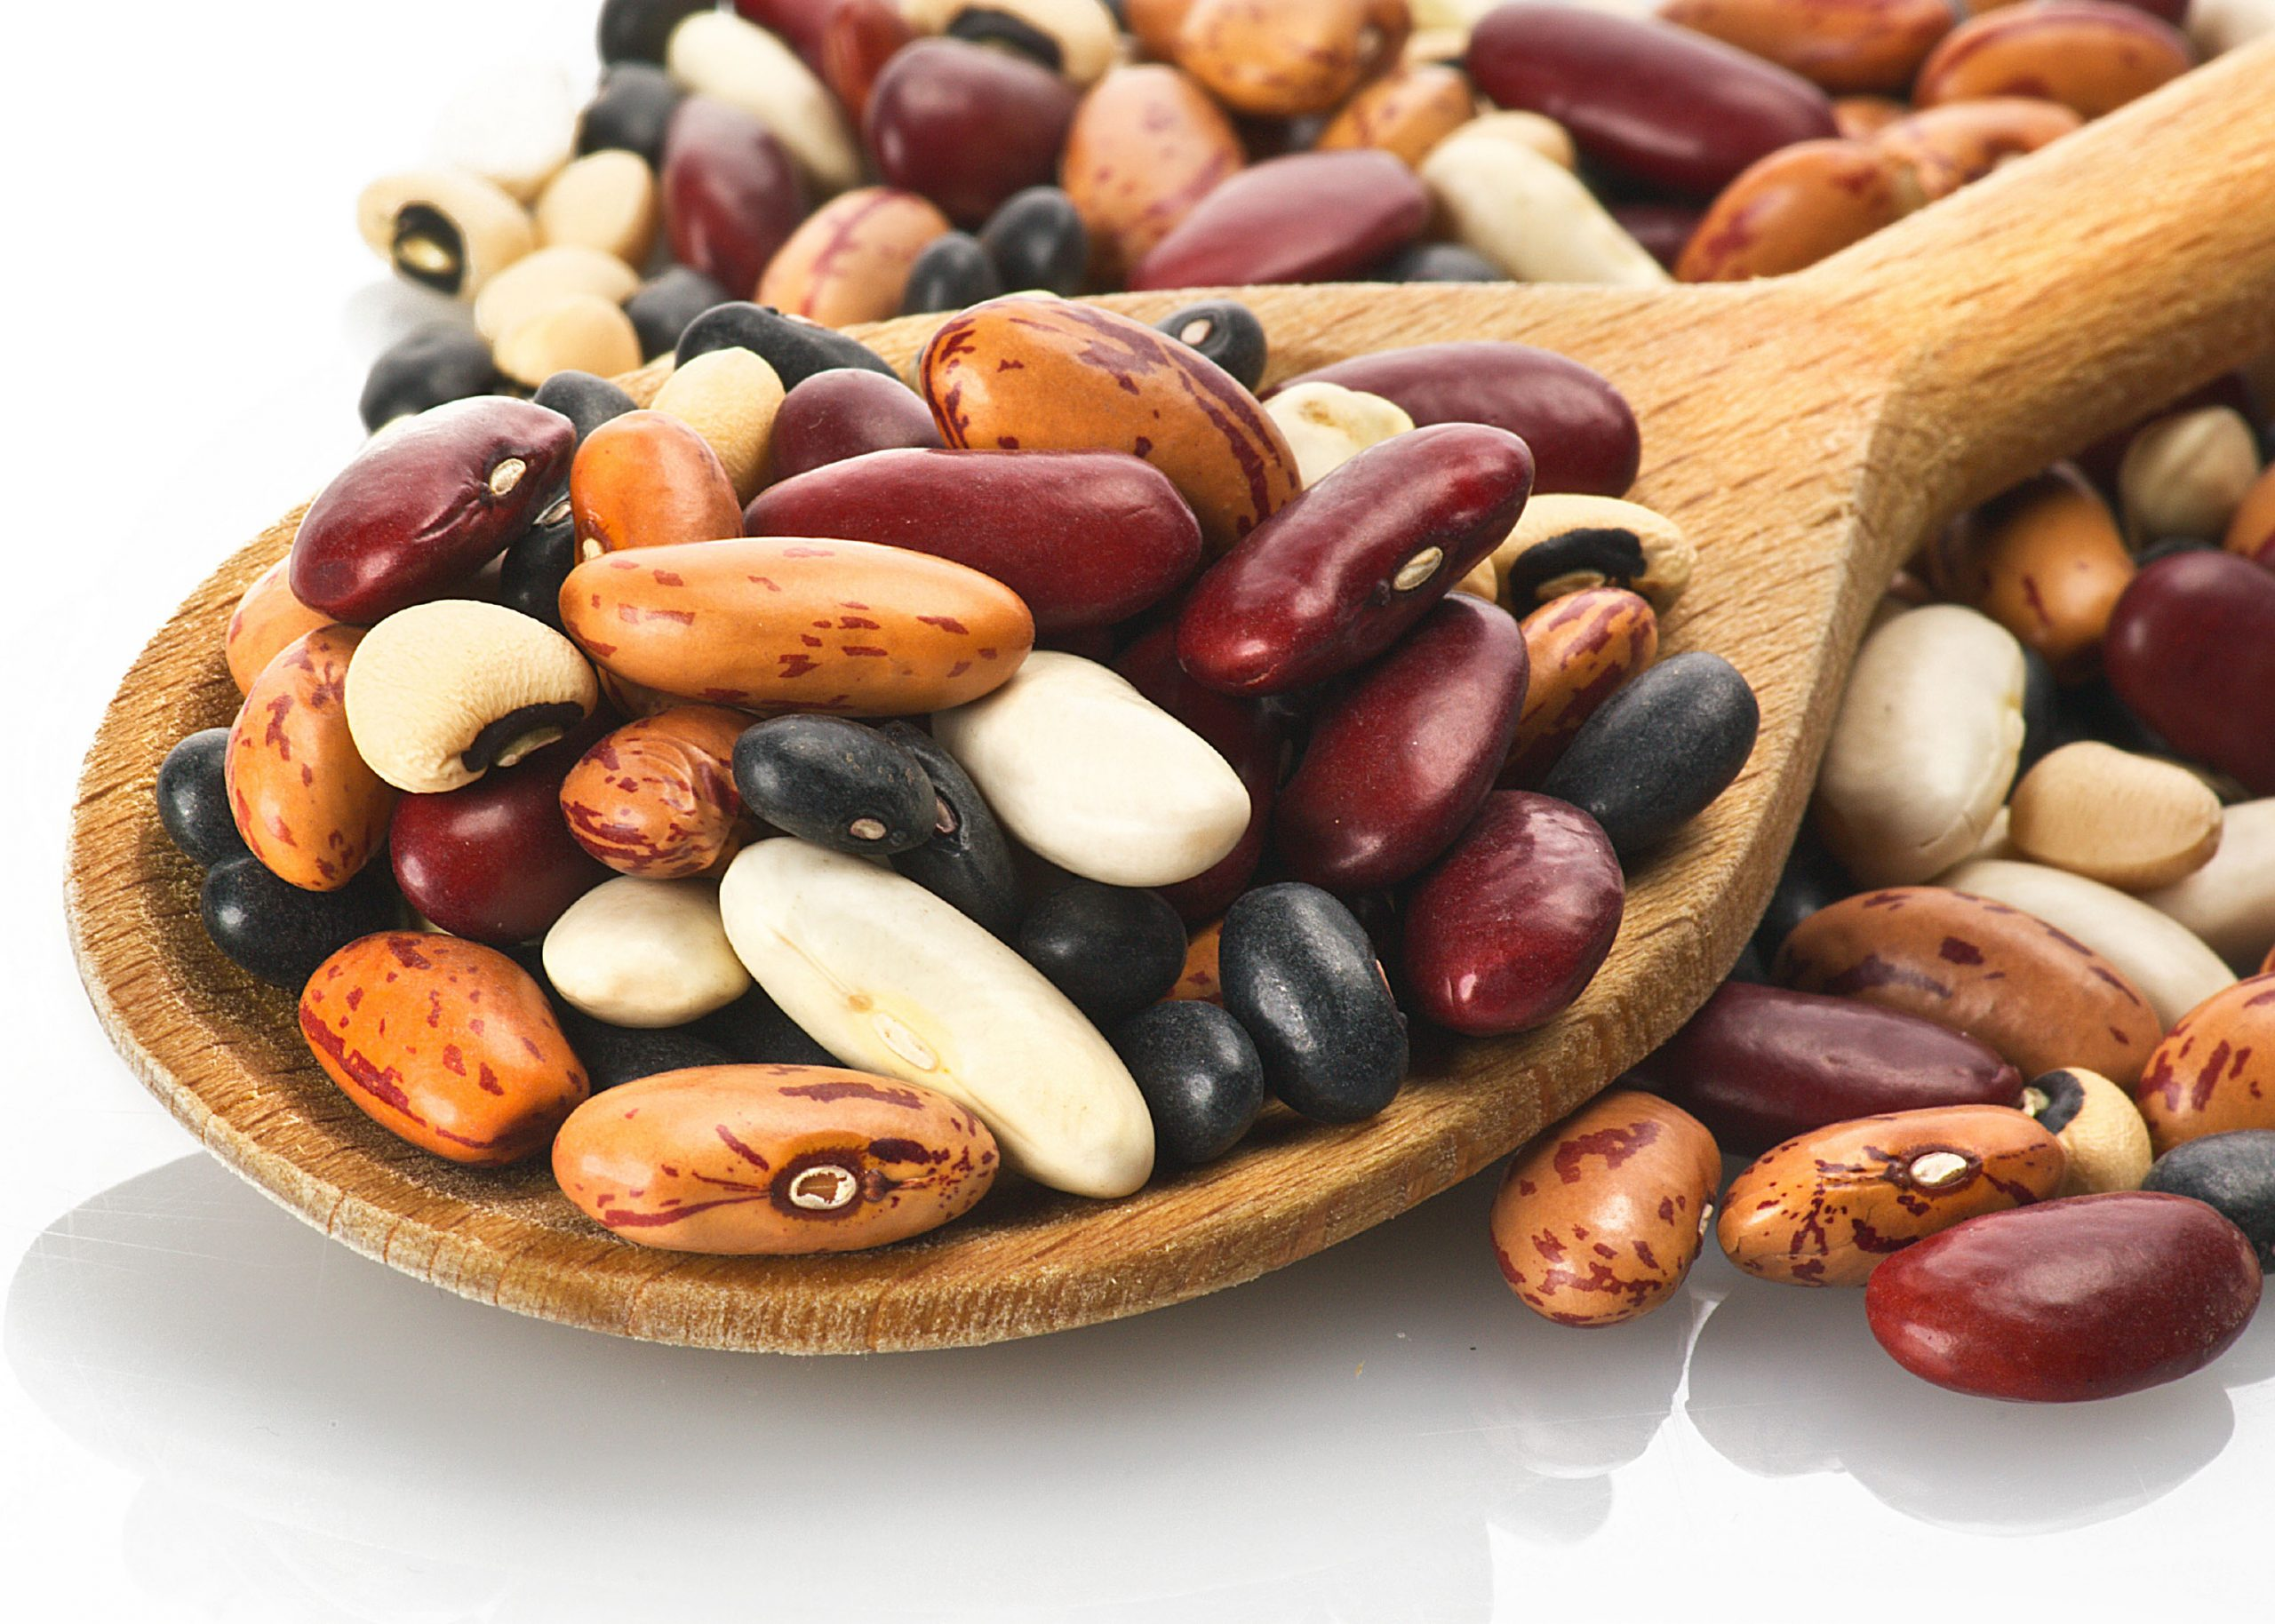 10 Foods That Give Dogs Gas - Beans and legumes